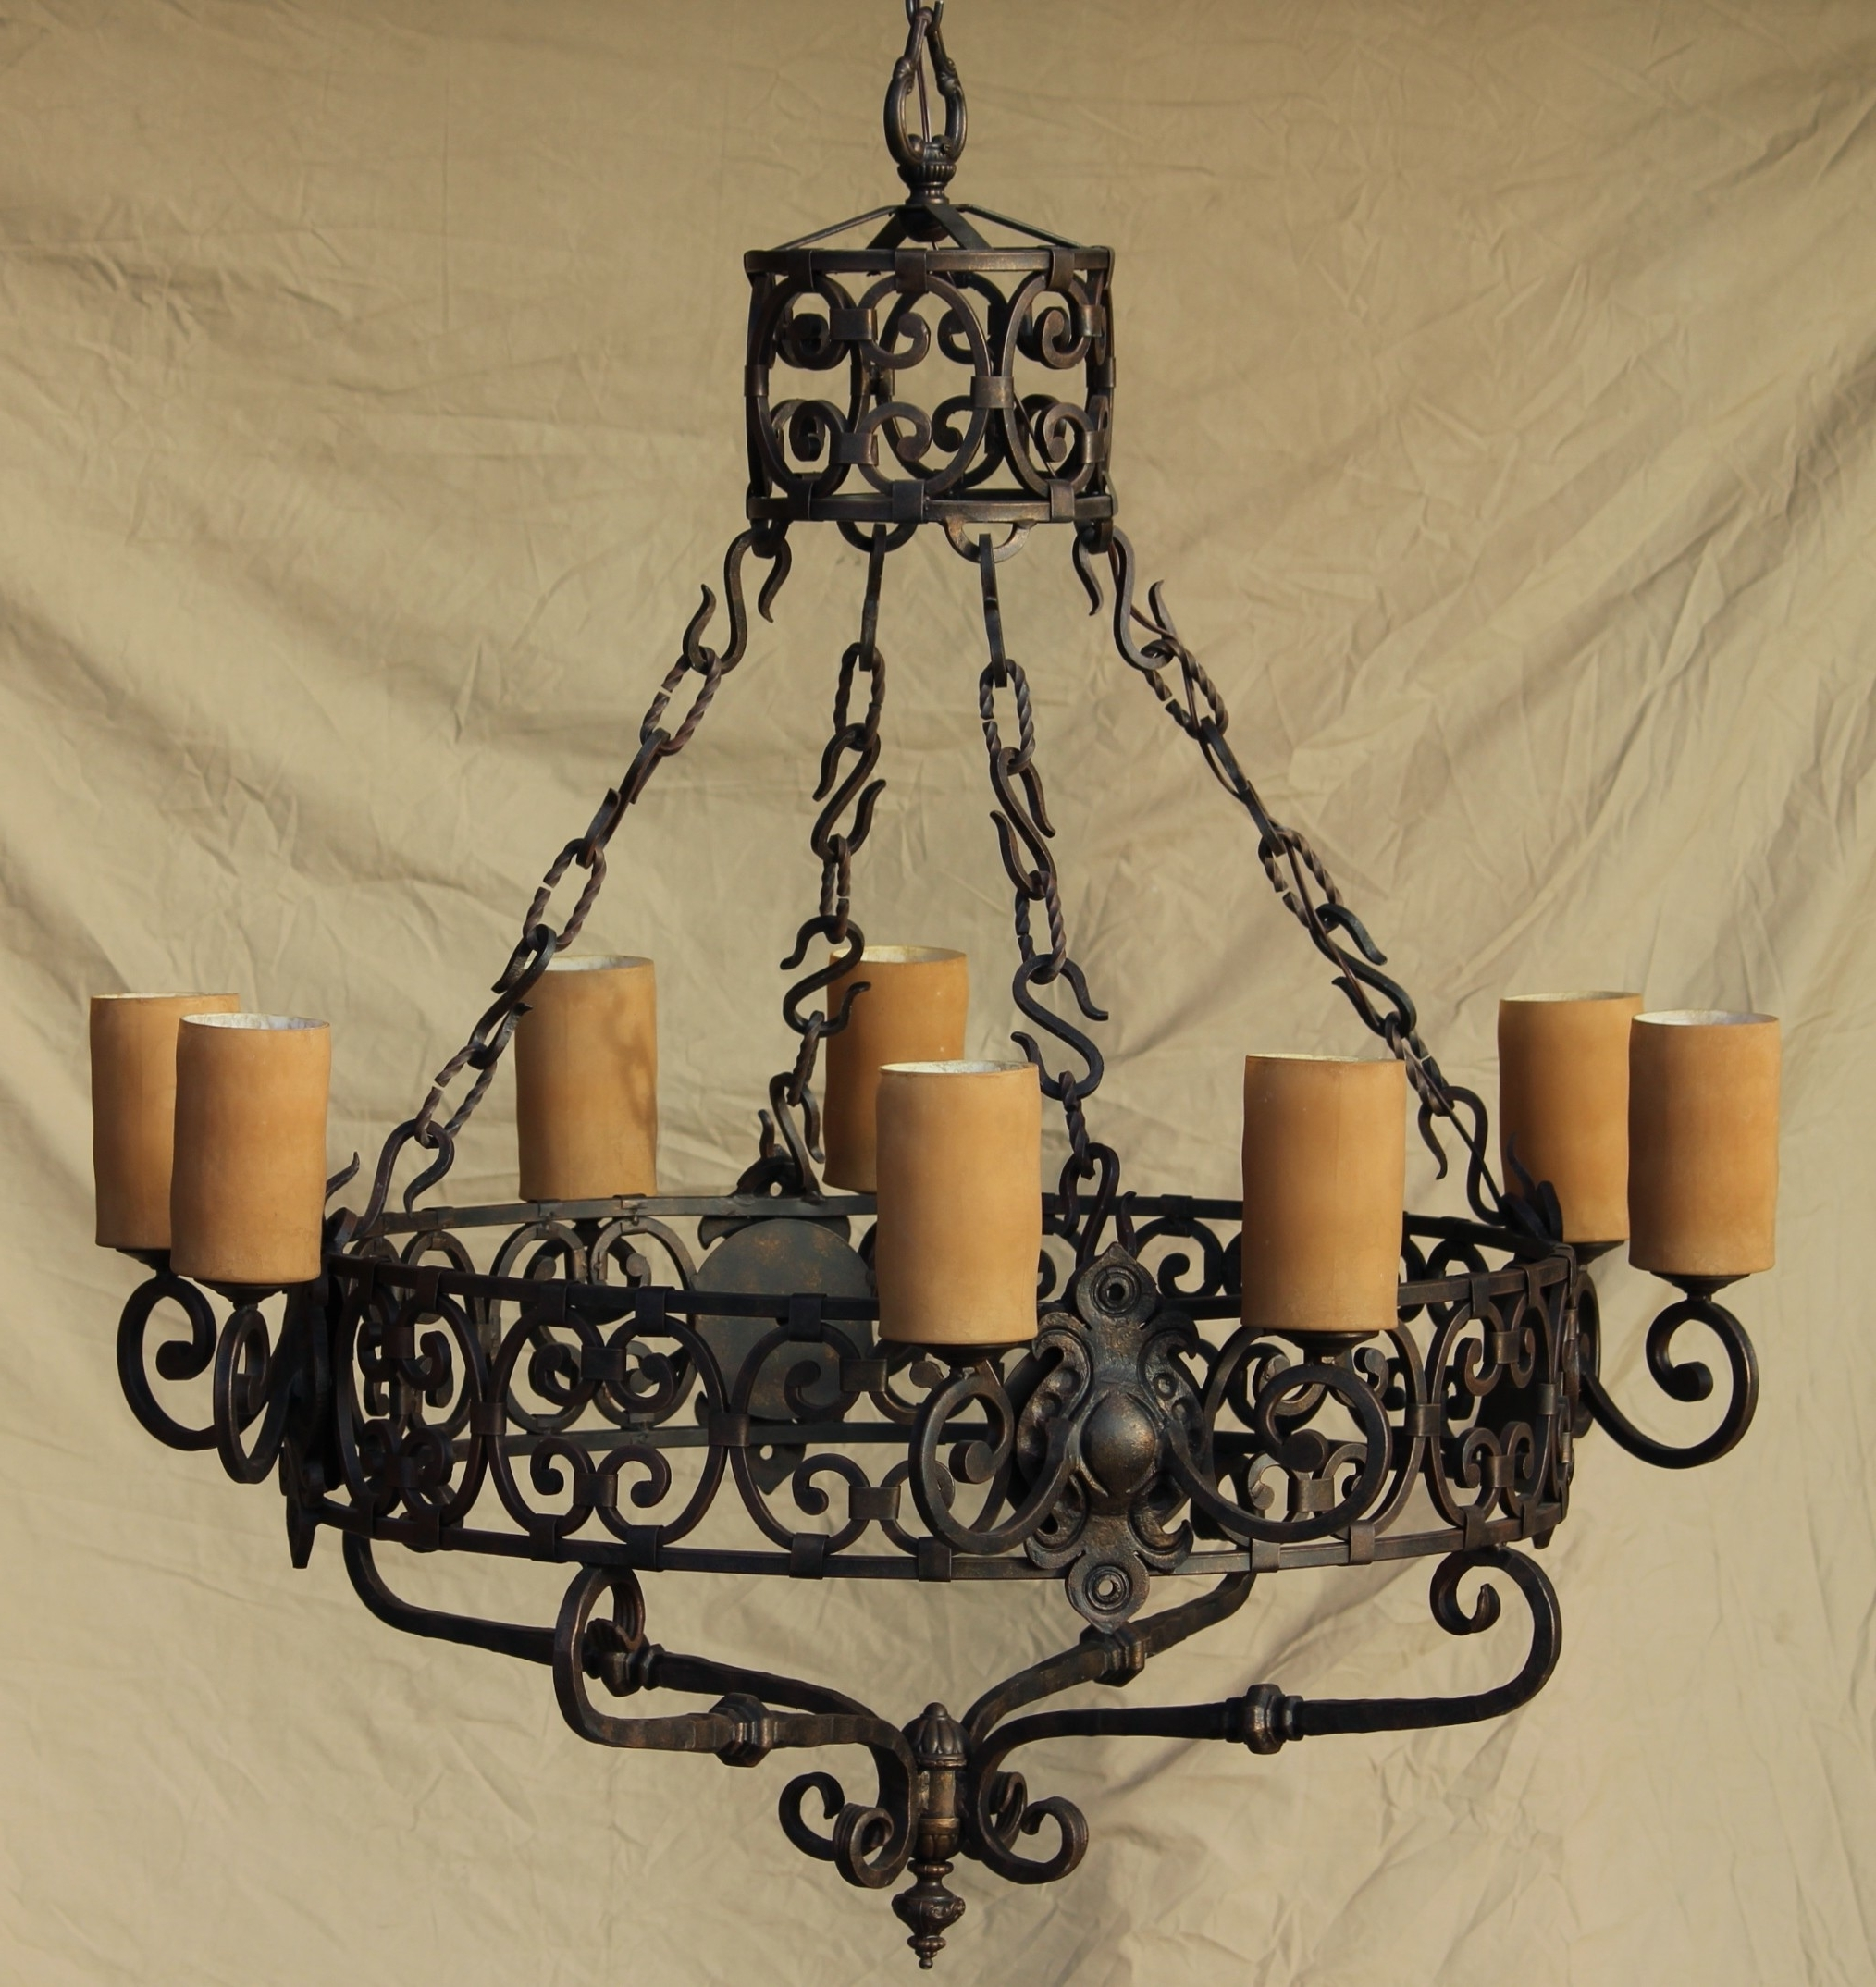 Lights Of Tuscany Chandeliers – Ceiling Fixtures – Fixtures For Most Popular Wrought Iron Chandeliers (View 11 of 20)